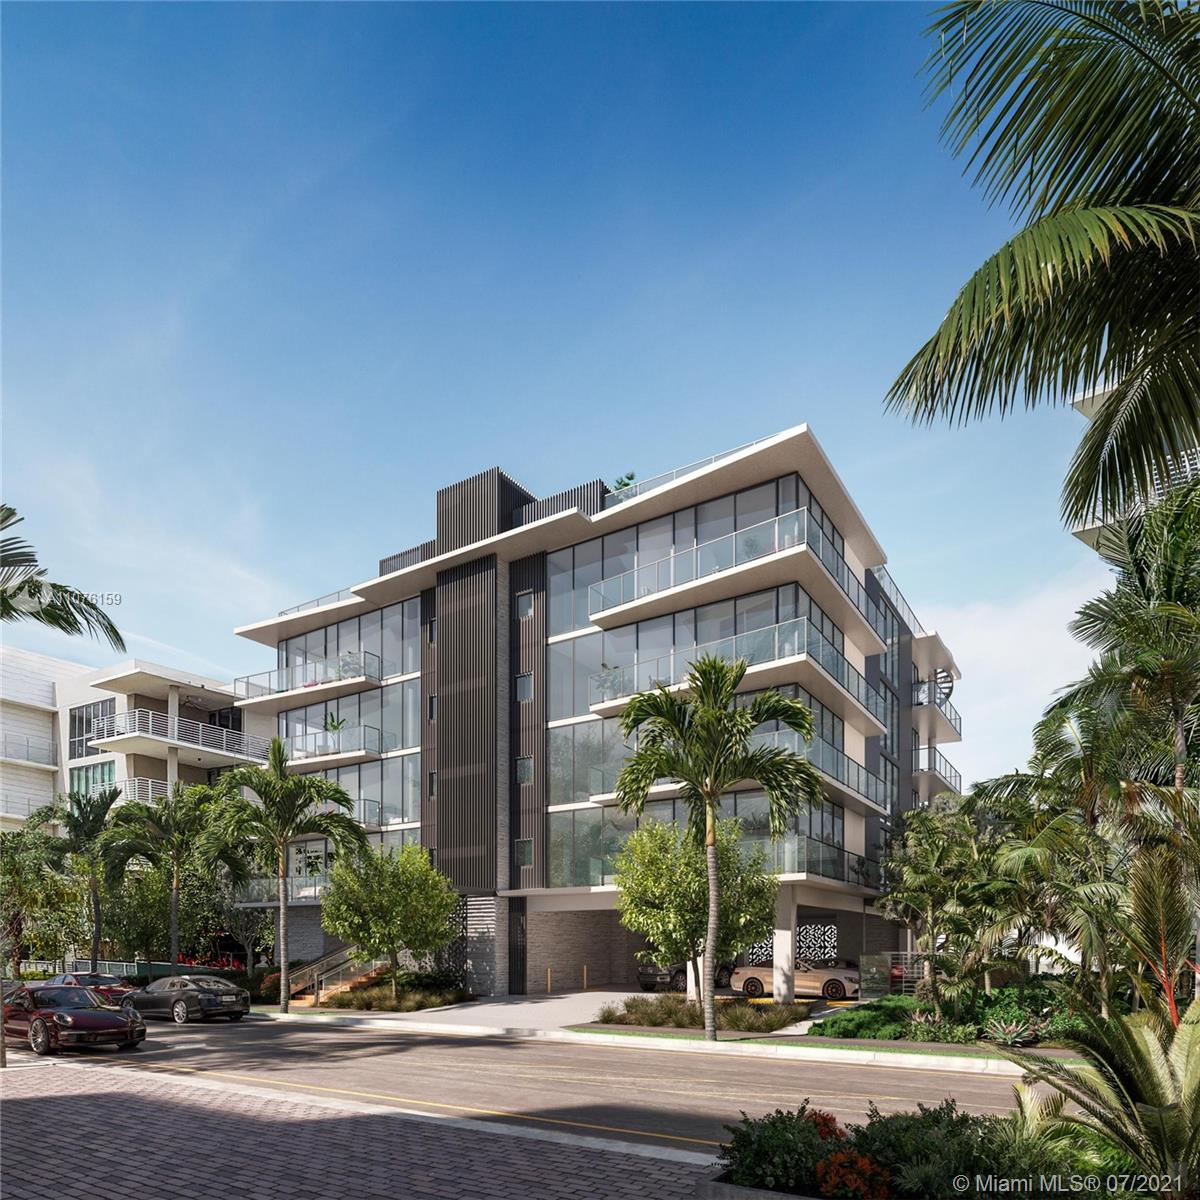 """Casa Murano Las Olas will rise 5 stories on beautiful Rio Grande Canal.  Only 8 residences approx. 3,100 ft.², massive terraces w/gorgeous sunrise & sunset views. All custom designed floating homes are 3 bedrooms +den & 4.5 baths; 10' ceilings, private elevator, coffered ceilings and elegant lighting. Exquisite finishes designed by IDC Interiors offering customizable Wolf/Subzero chef curated kitchen & bathrooms by renowned Mia Cucina.  Boat slips & playful rooftop terraces w/hot tub & summer kitchen are included! Located in the heart of the yachting capital of the world; Fort Lauderdale. Steps away from Las Olas entertainment district, culinary cuisine & minutes to world famous Ft. Lauderdale Beach.  """"Luxury waterfront living where no expense is overlooked"""" Completion date Q3-Fall 2022!"""